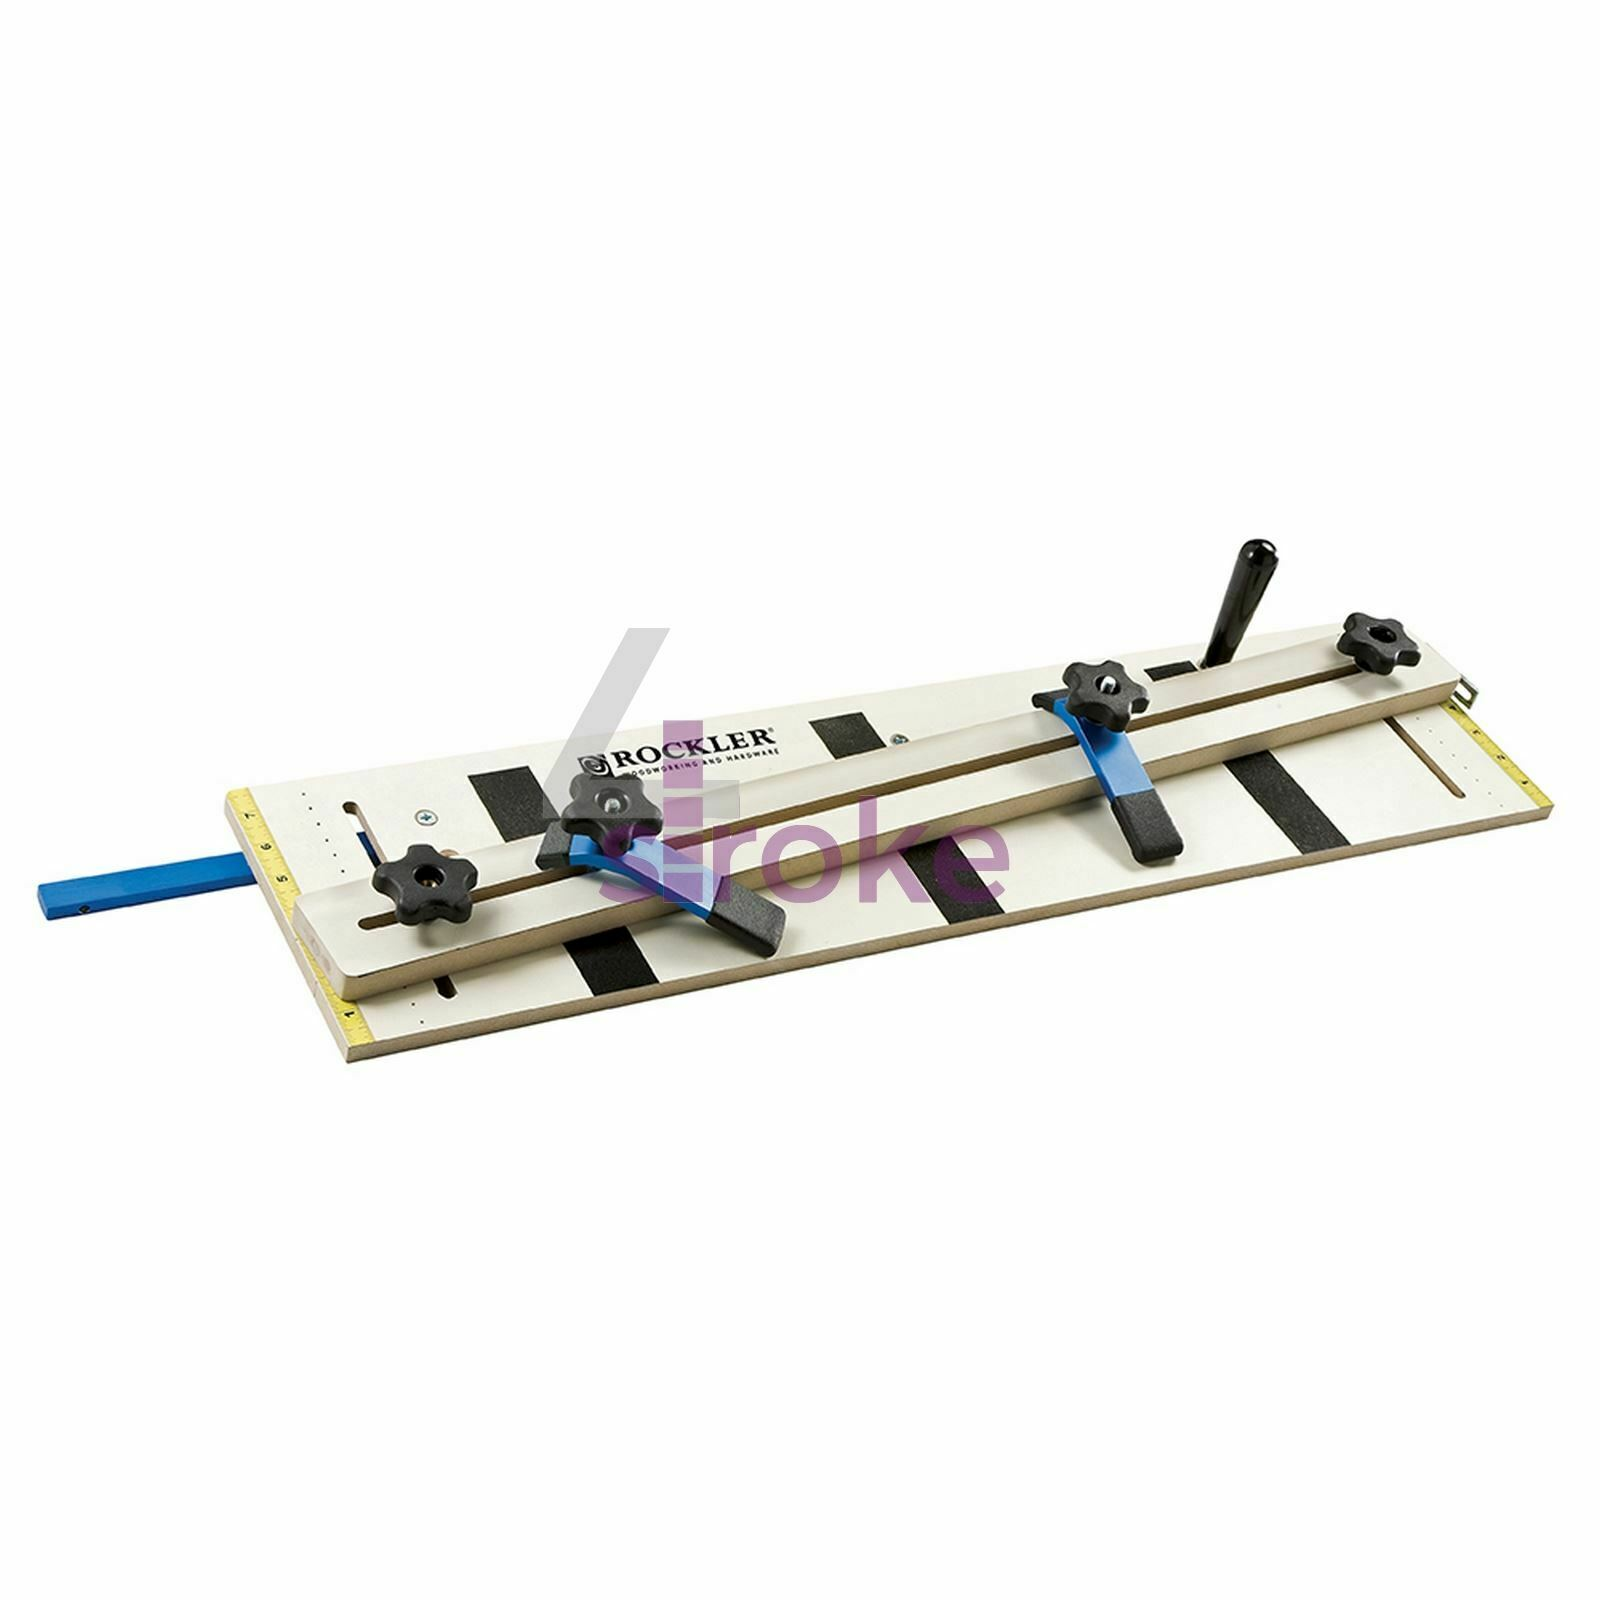 Taper Straight-Line Jig 787x197mm(31-5 8  x 7-3 4 ) Indexed Angle Setting System